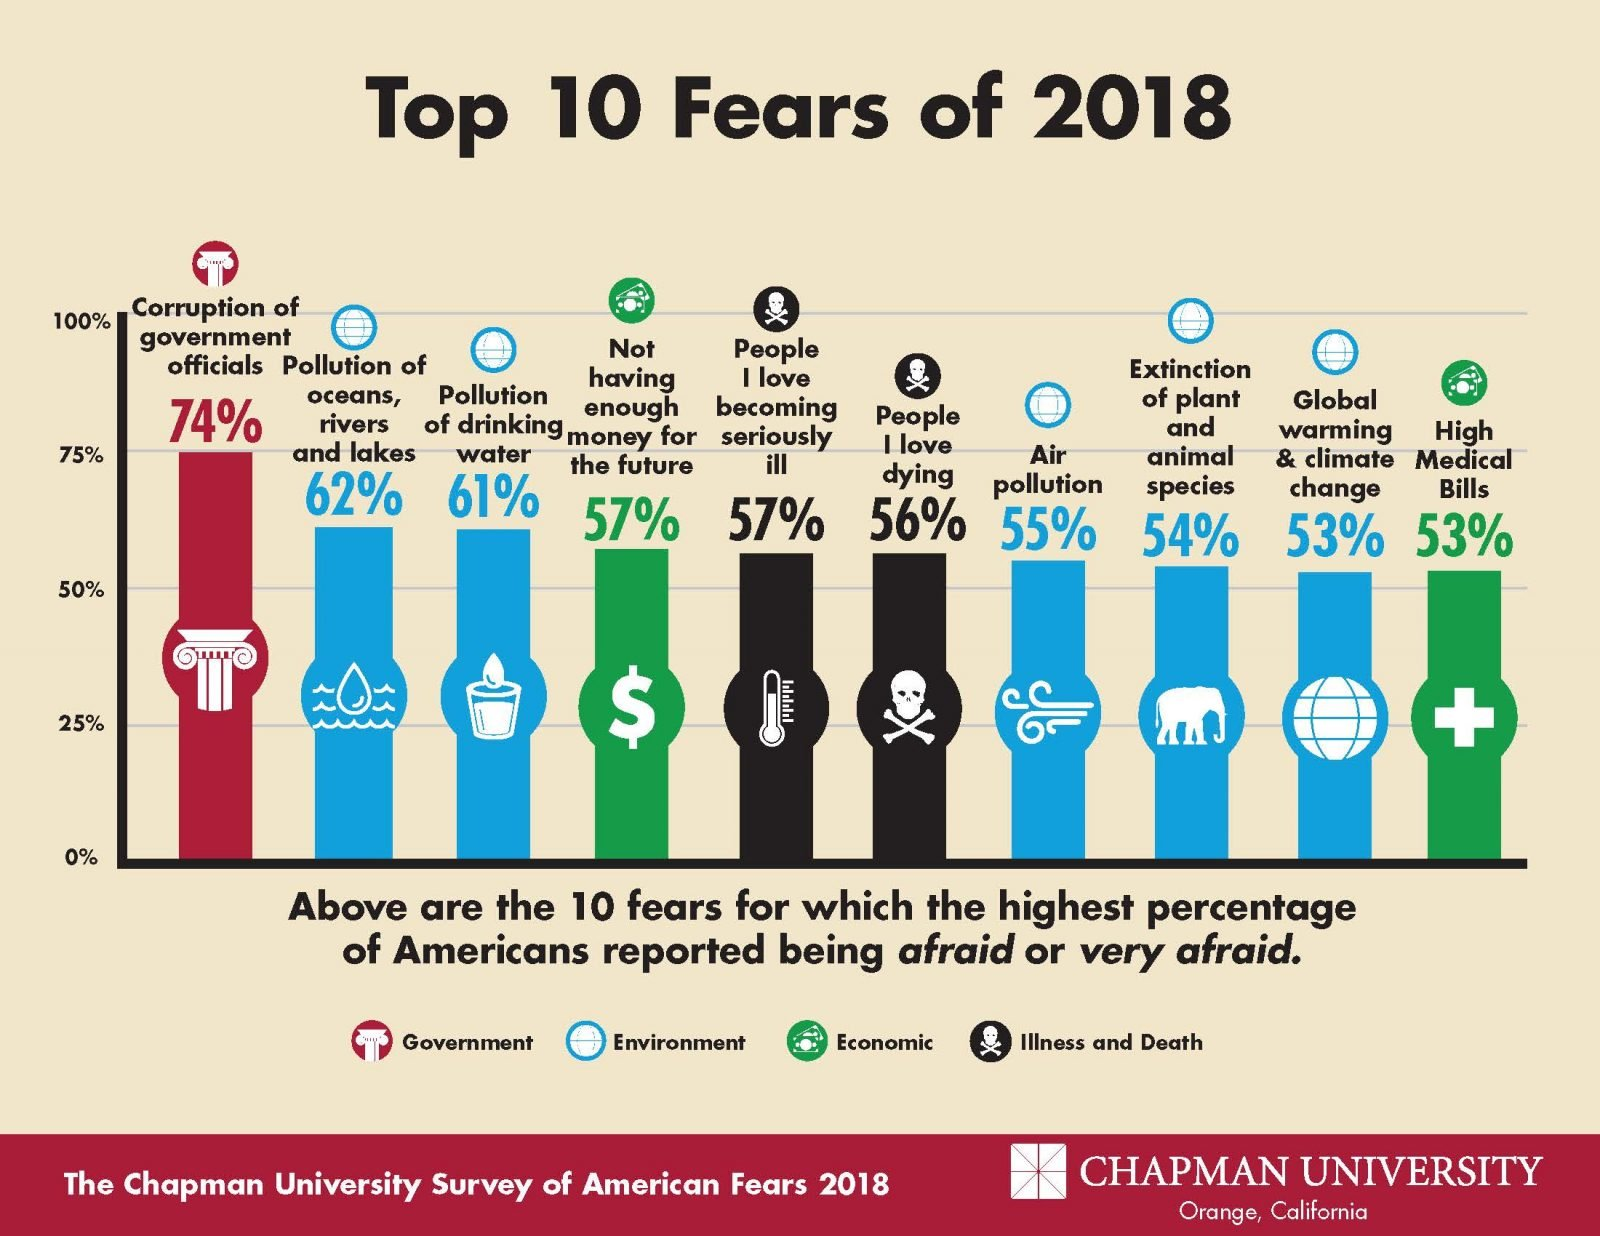 2018 Fear Campaign Top 10 Bar Graph 1600x1236